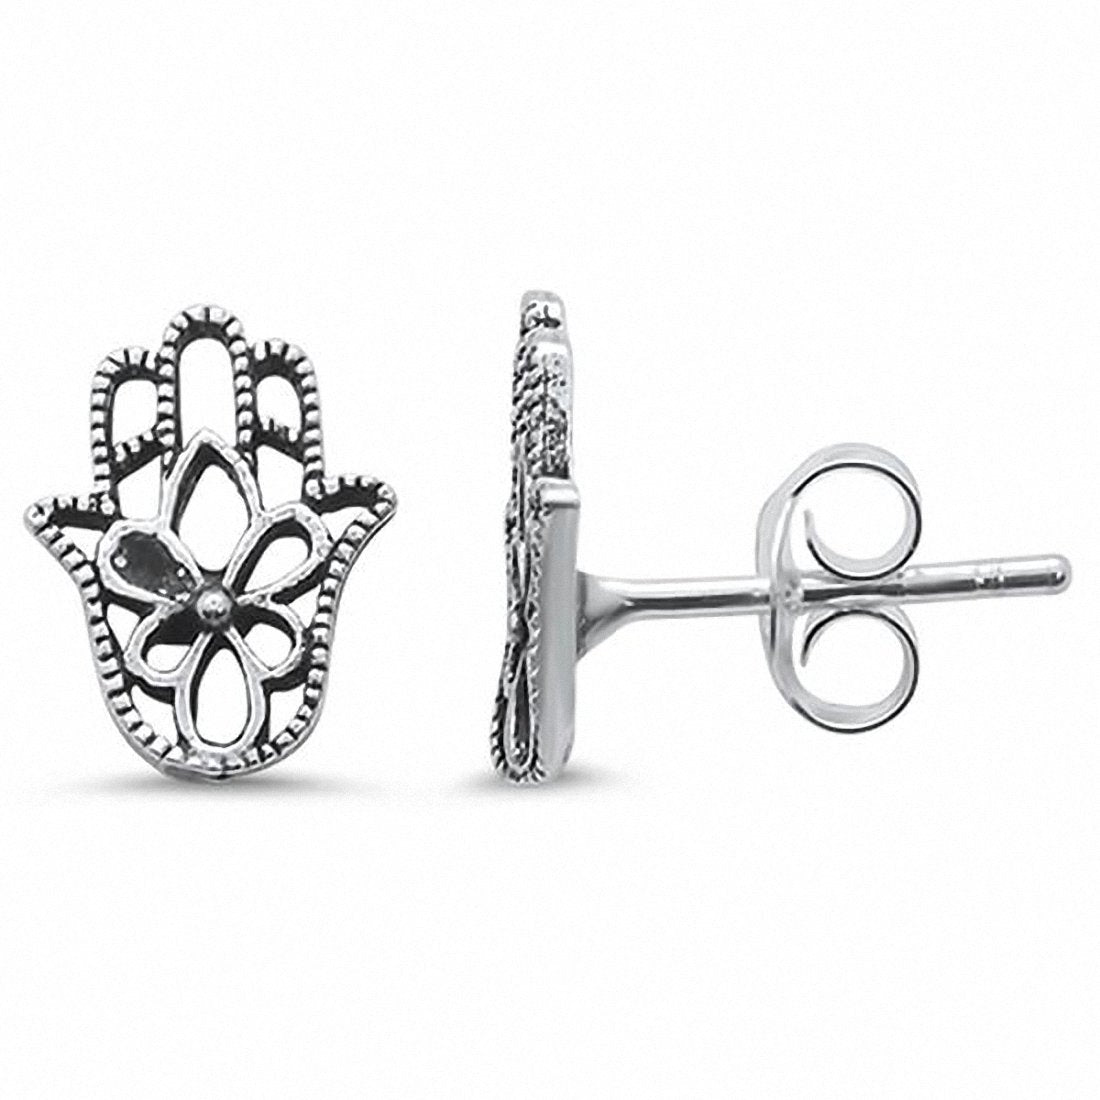 Hamsa Hand of God Stud Earrings 925 Sterling Silver Choose Color